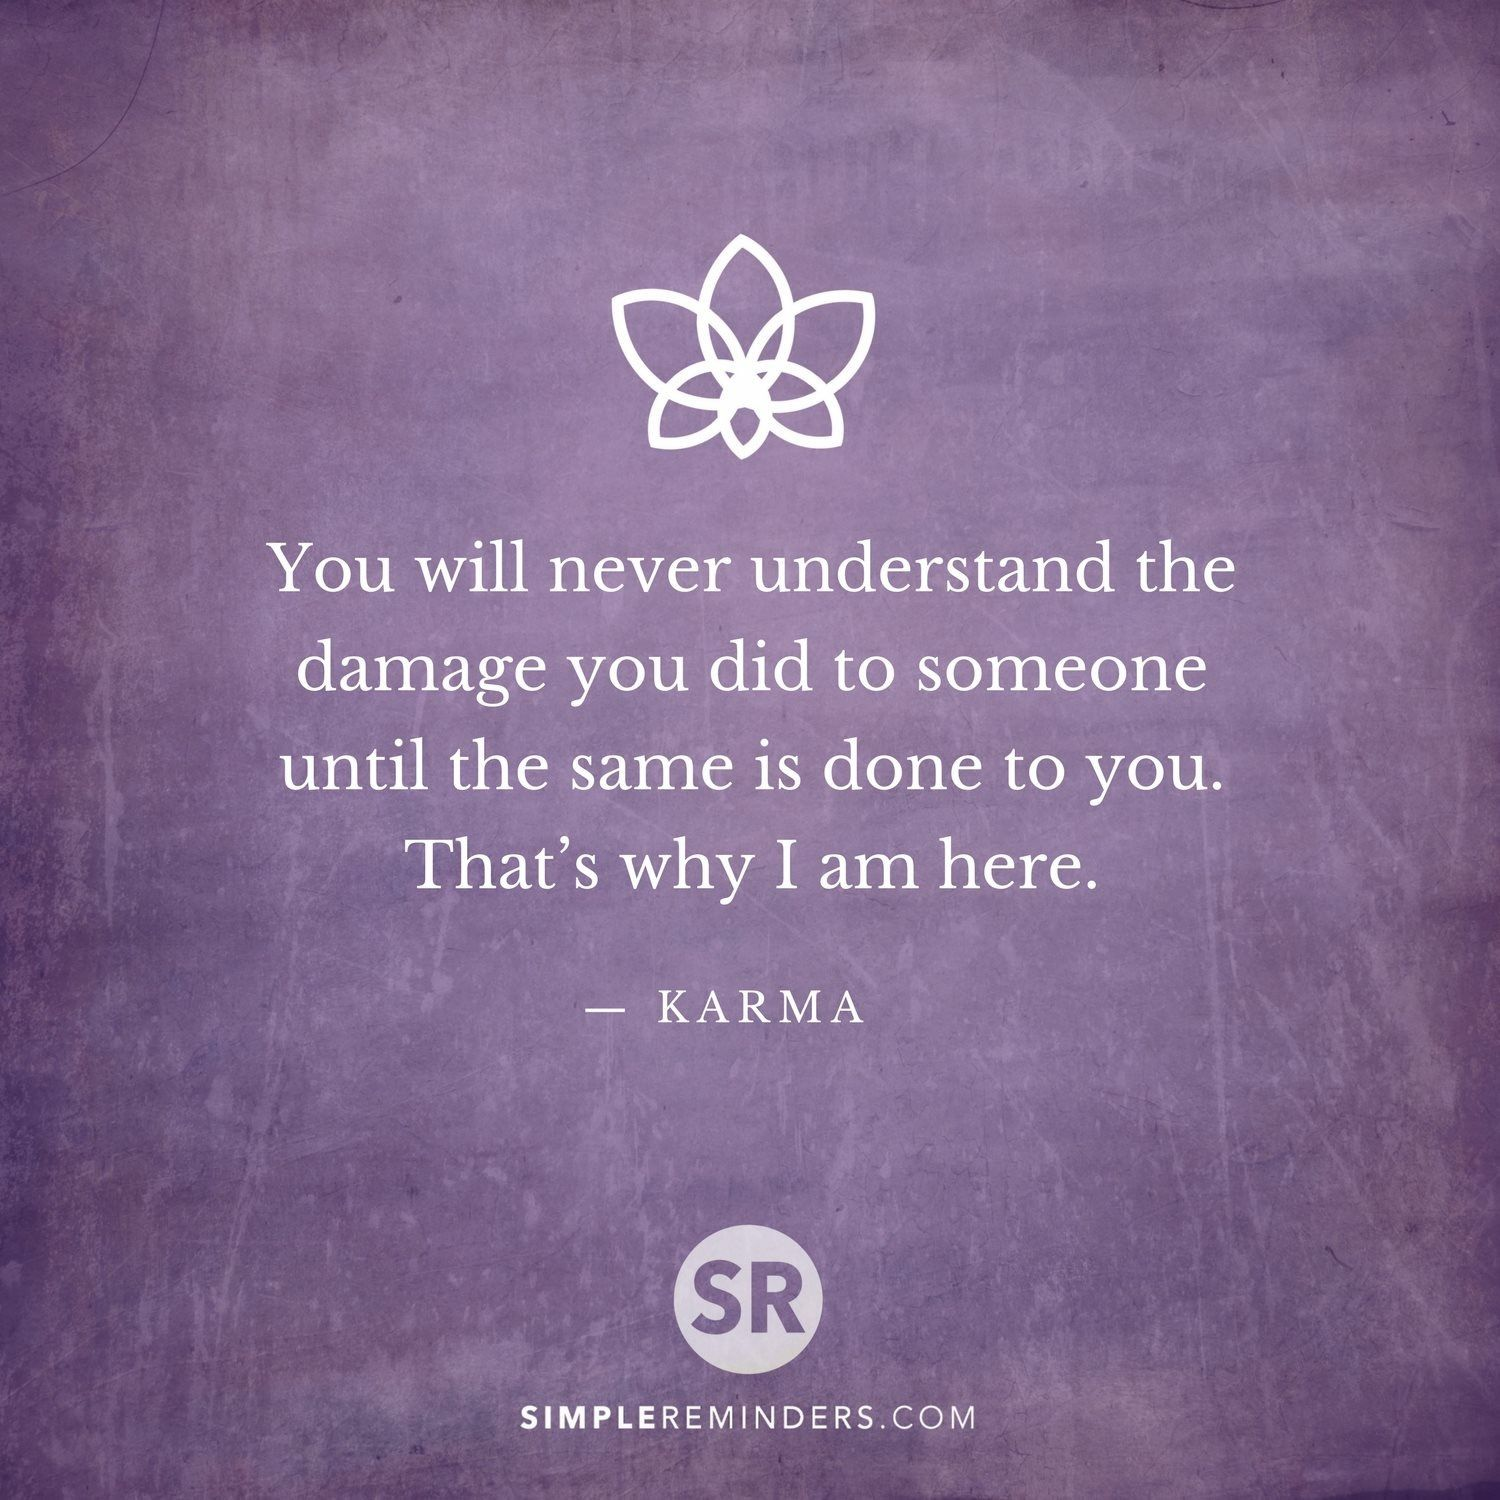 Pin by brittany buck on quotes pinterest karma picture quotes divorce brass inspire quotes karma inspring quotes inspirational quotes about inspiring quotes inspirational quotes altavistaventures Image collections